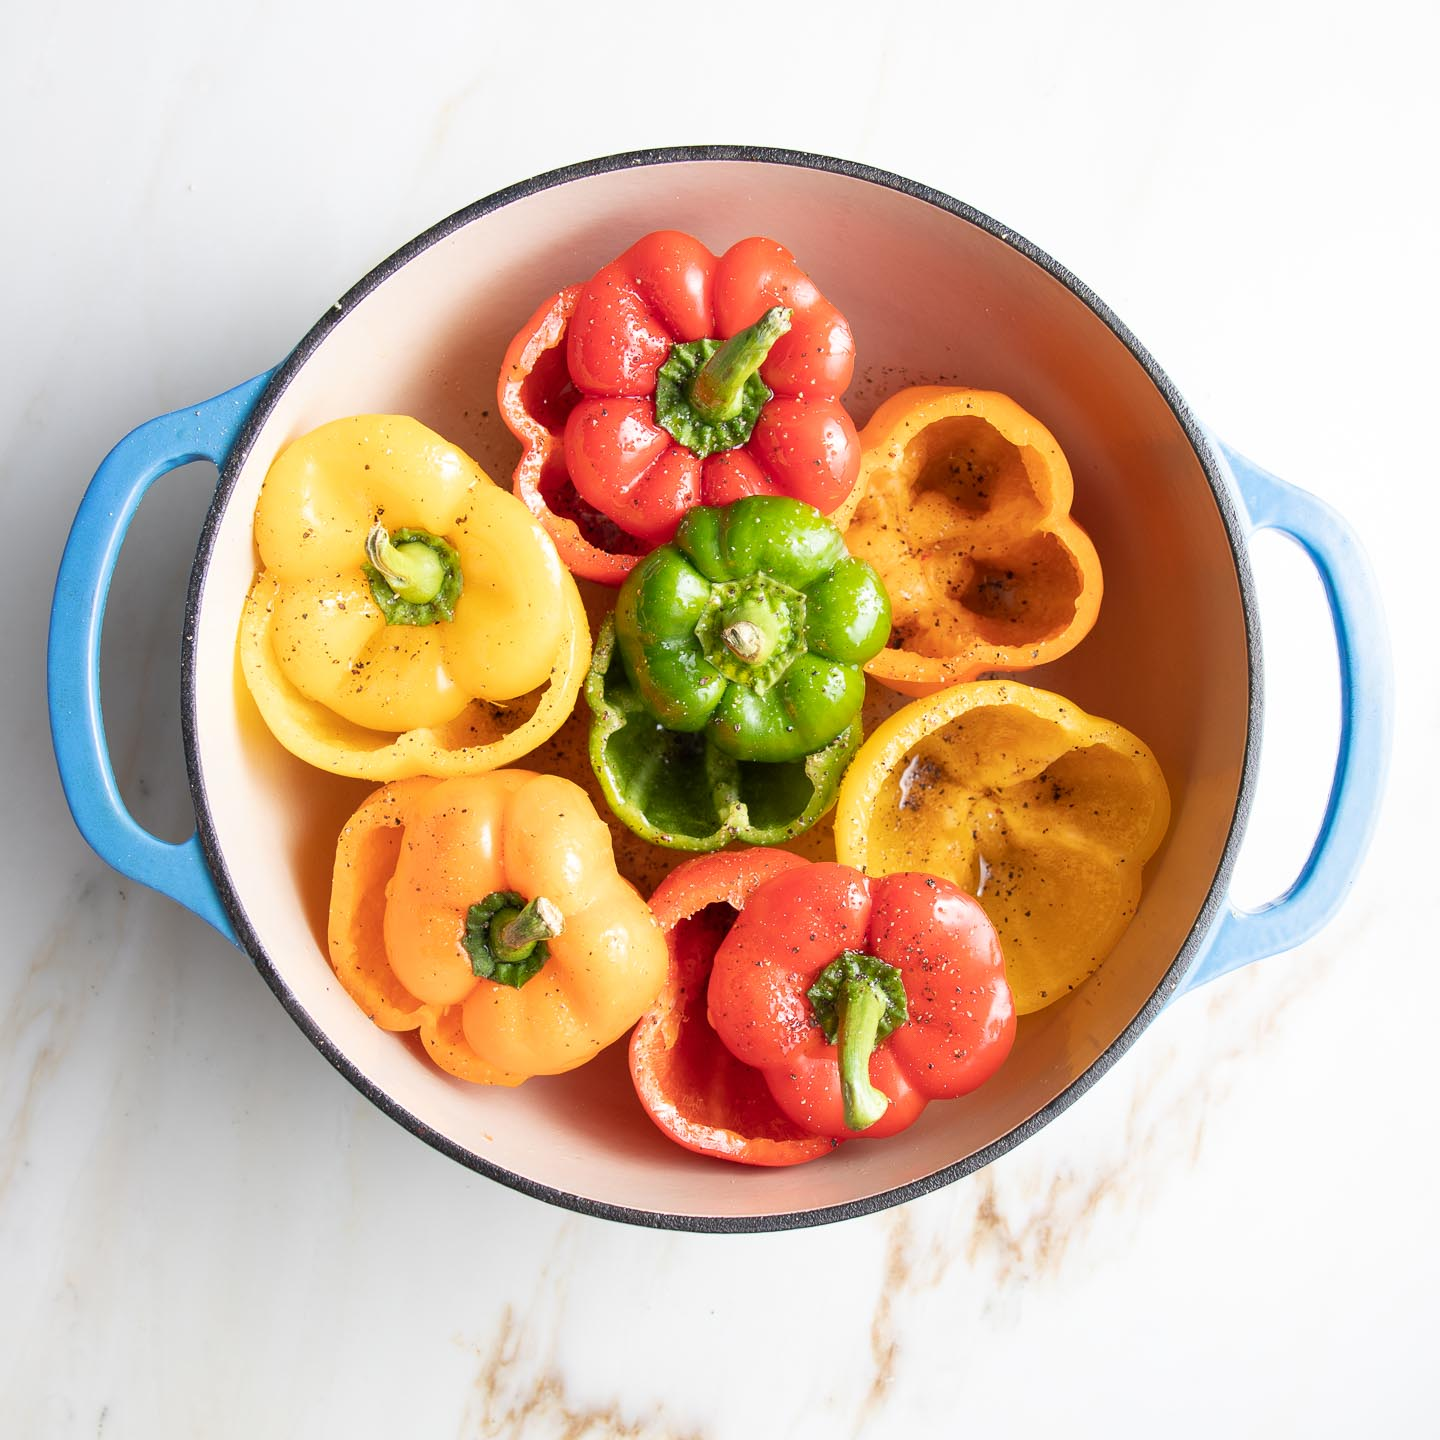 Red, orange, yellow and green bell peppers, with their tops cut off, fit tightly into a dutch oven so they stand up.